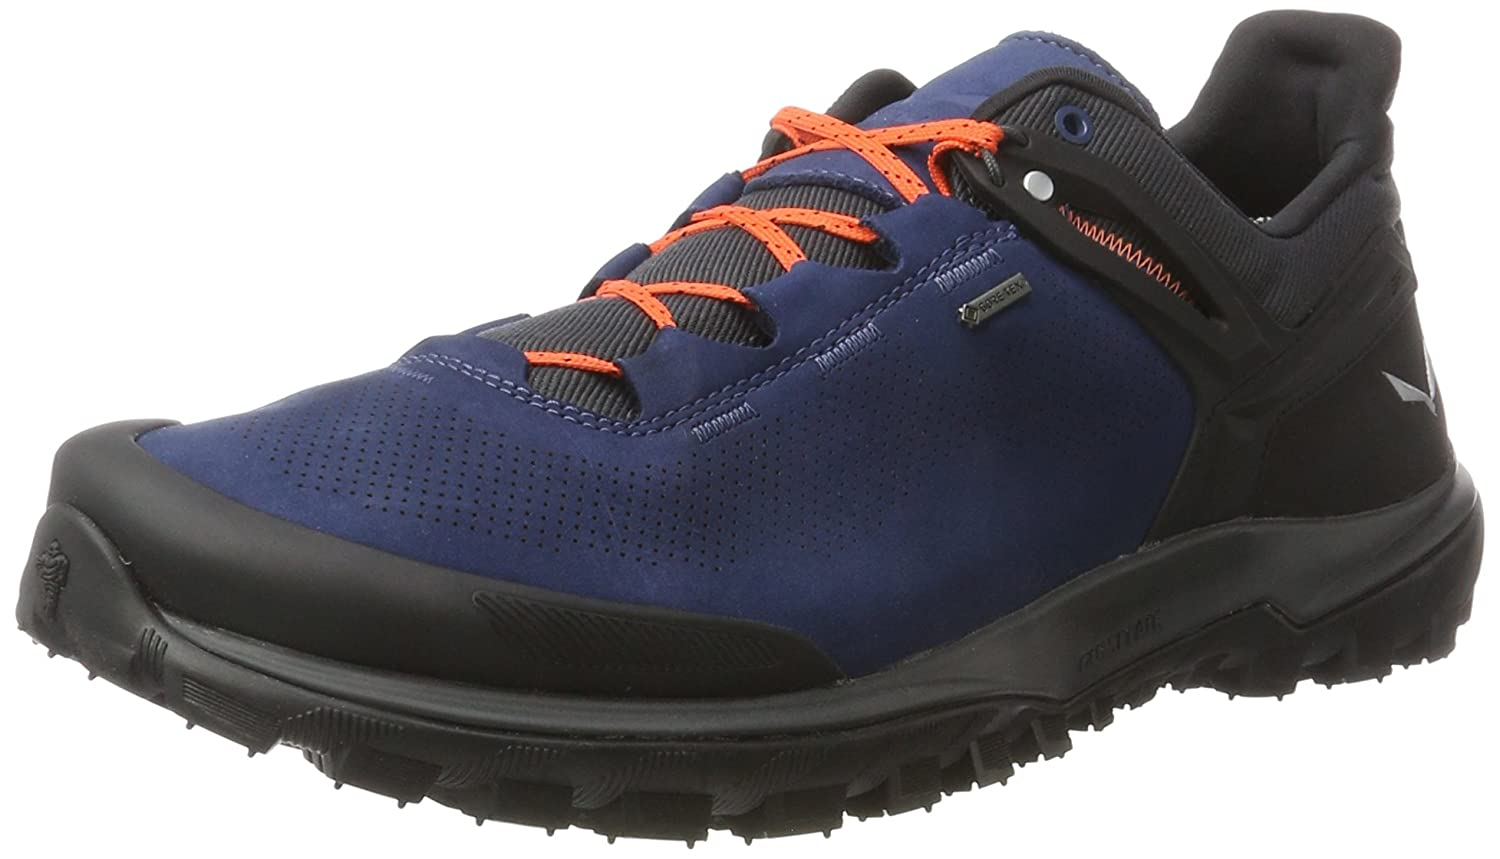 SALEWA Ms Wander Hiker GTX, Zapatillas de Senderismo Para Hombre 40 EU|Multicolor (Dark Denim/Holland 0358)